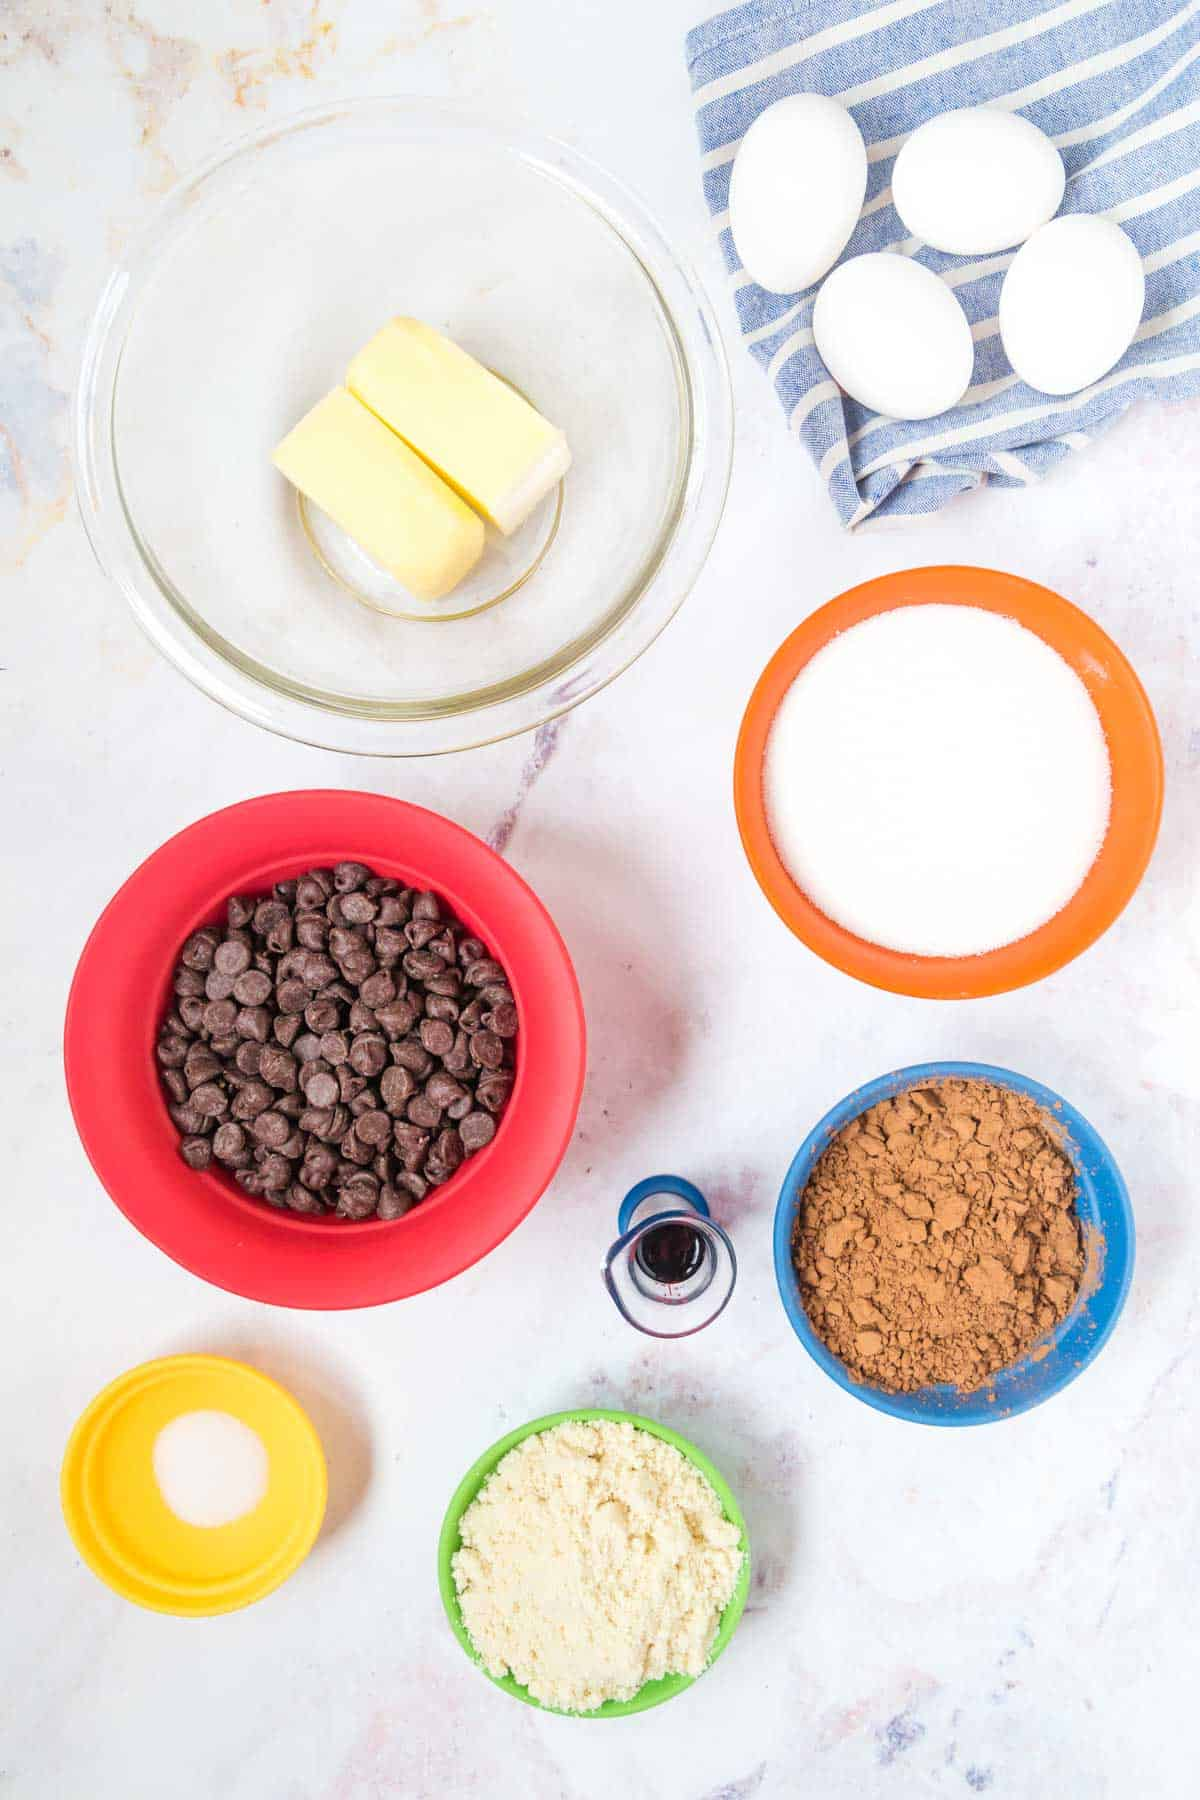 bowls of chocolate chips, butter, sugar, salt, cocoa powder, vanilla extract, and almond flour plus four eggs on a napkin on a marble tabletop